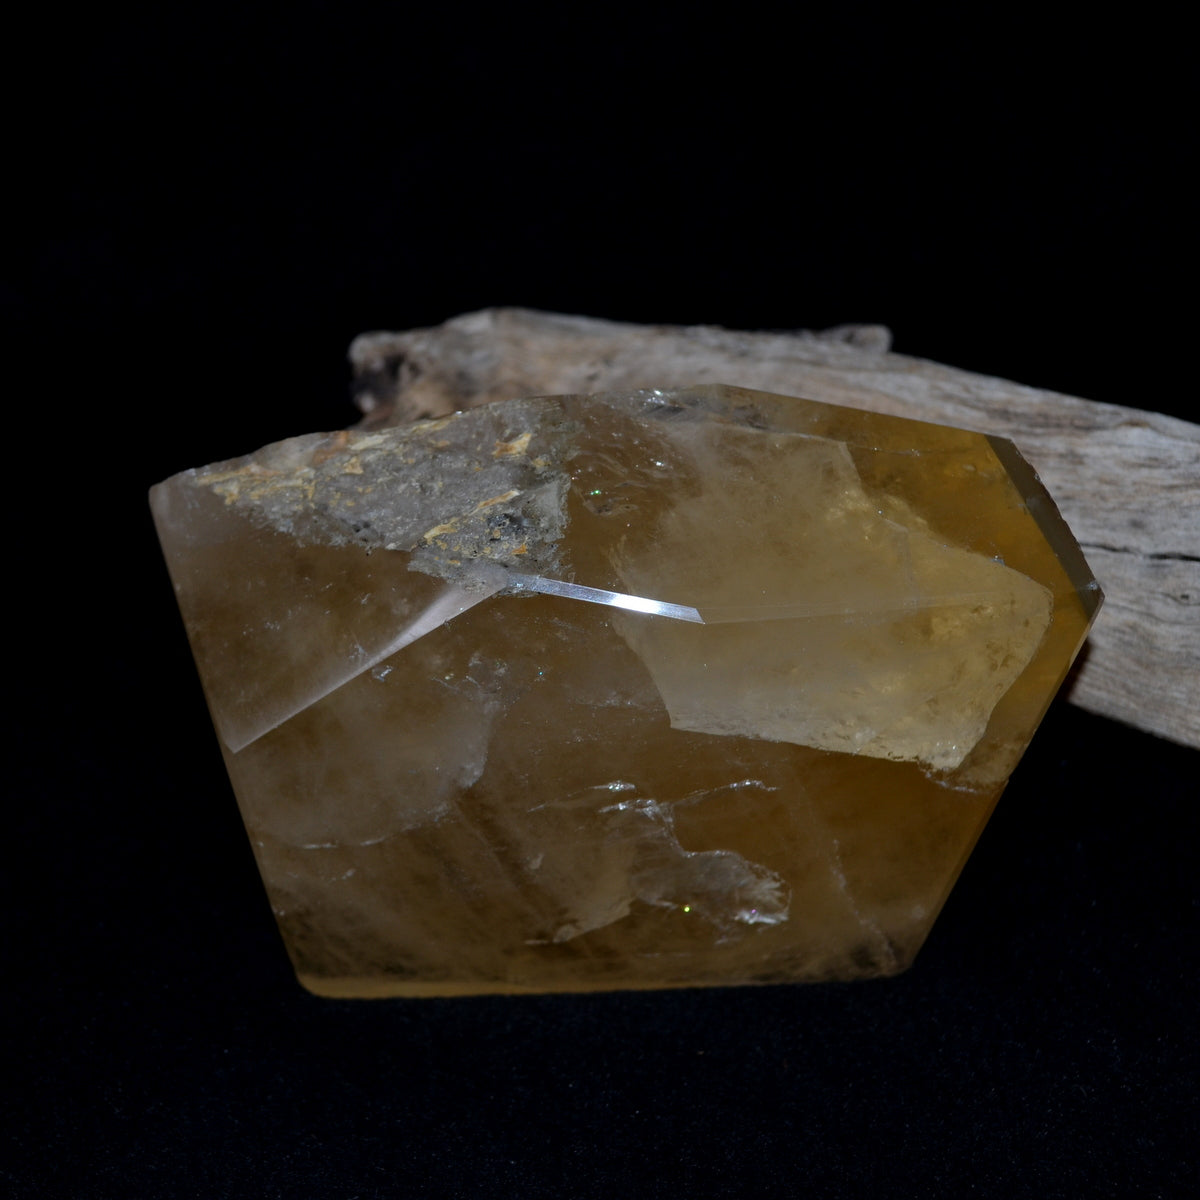 Natural Untreated Citrine Freeform - Wealth Abundance Law of Attraction Manifestation - Shop now at Illiom Crystals - We Have Afterpay